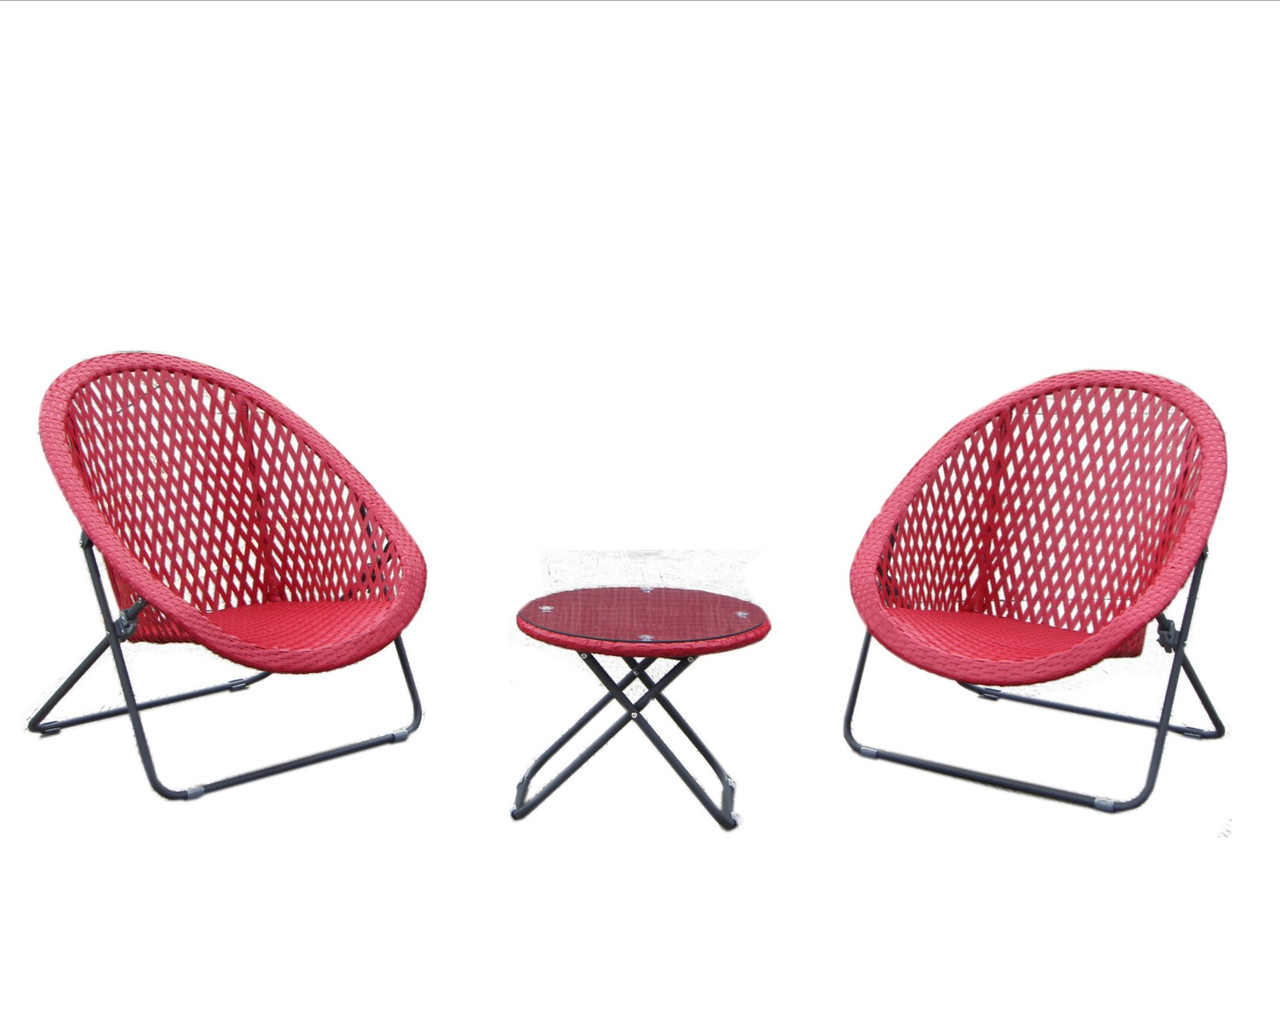 Tobs 3 Piece Garden Set - Red - LOCAL DELIVERY ONLY